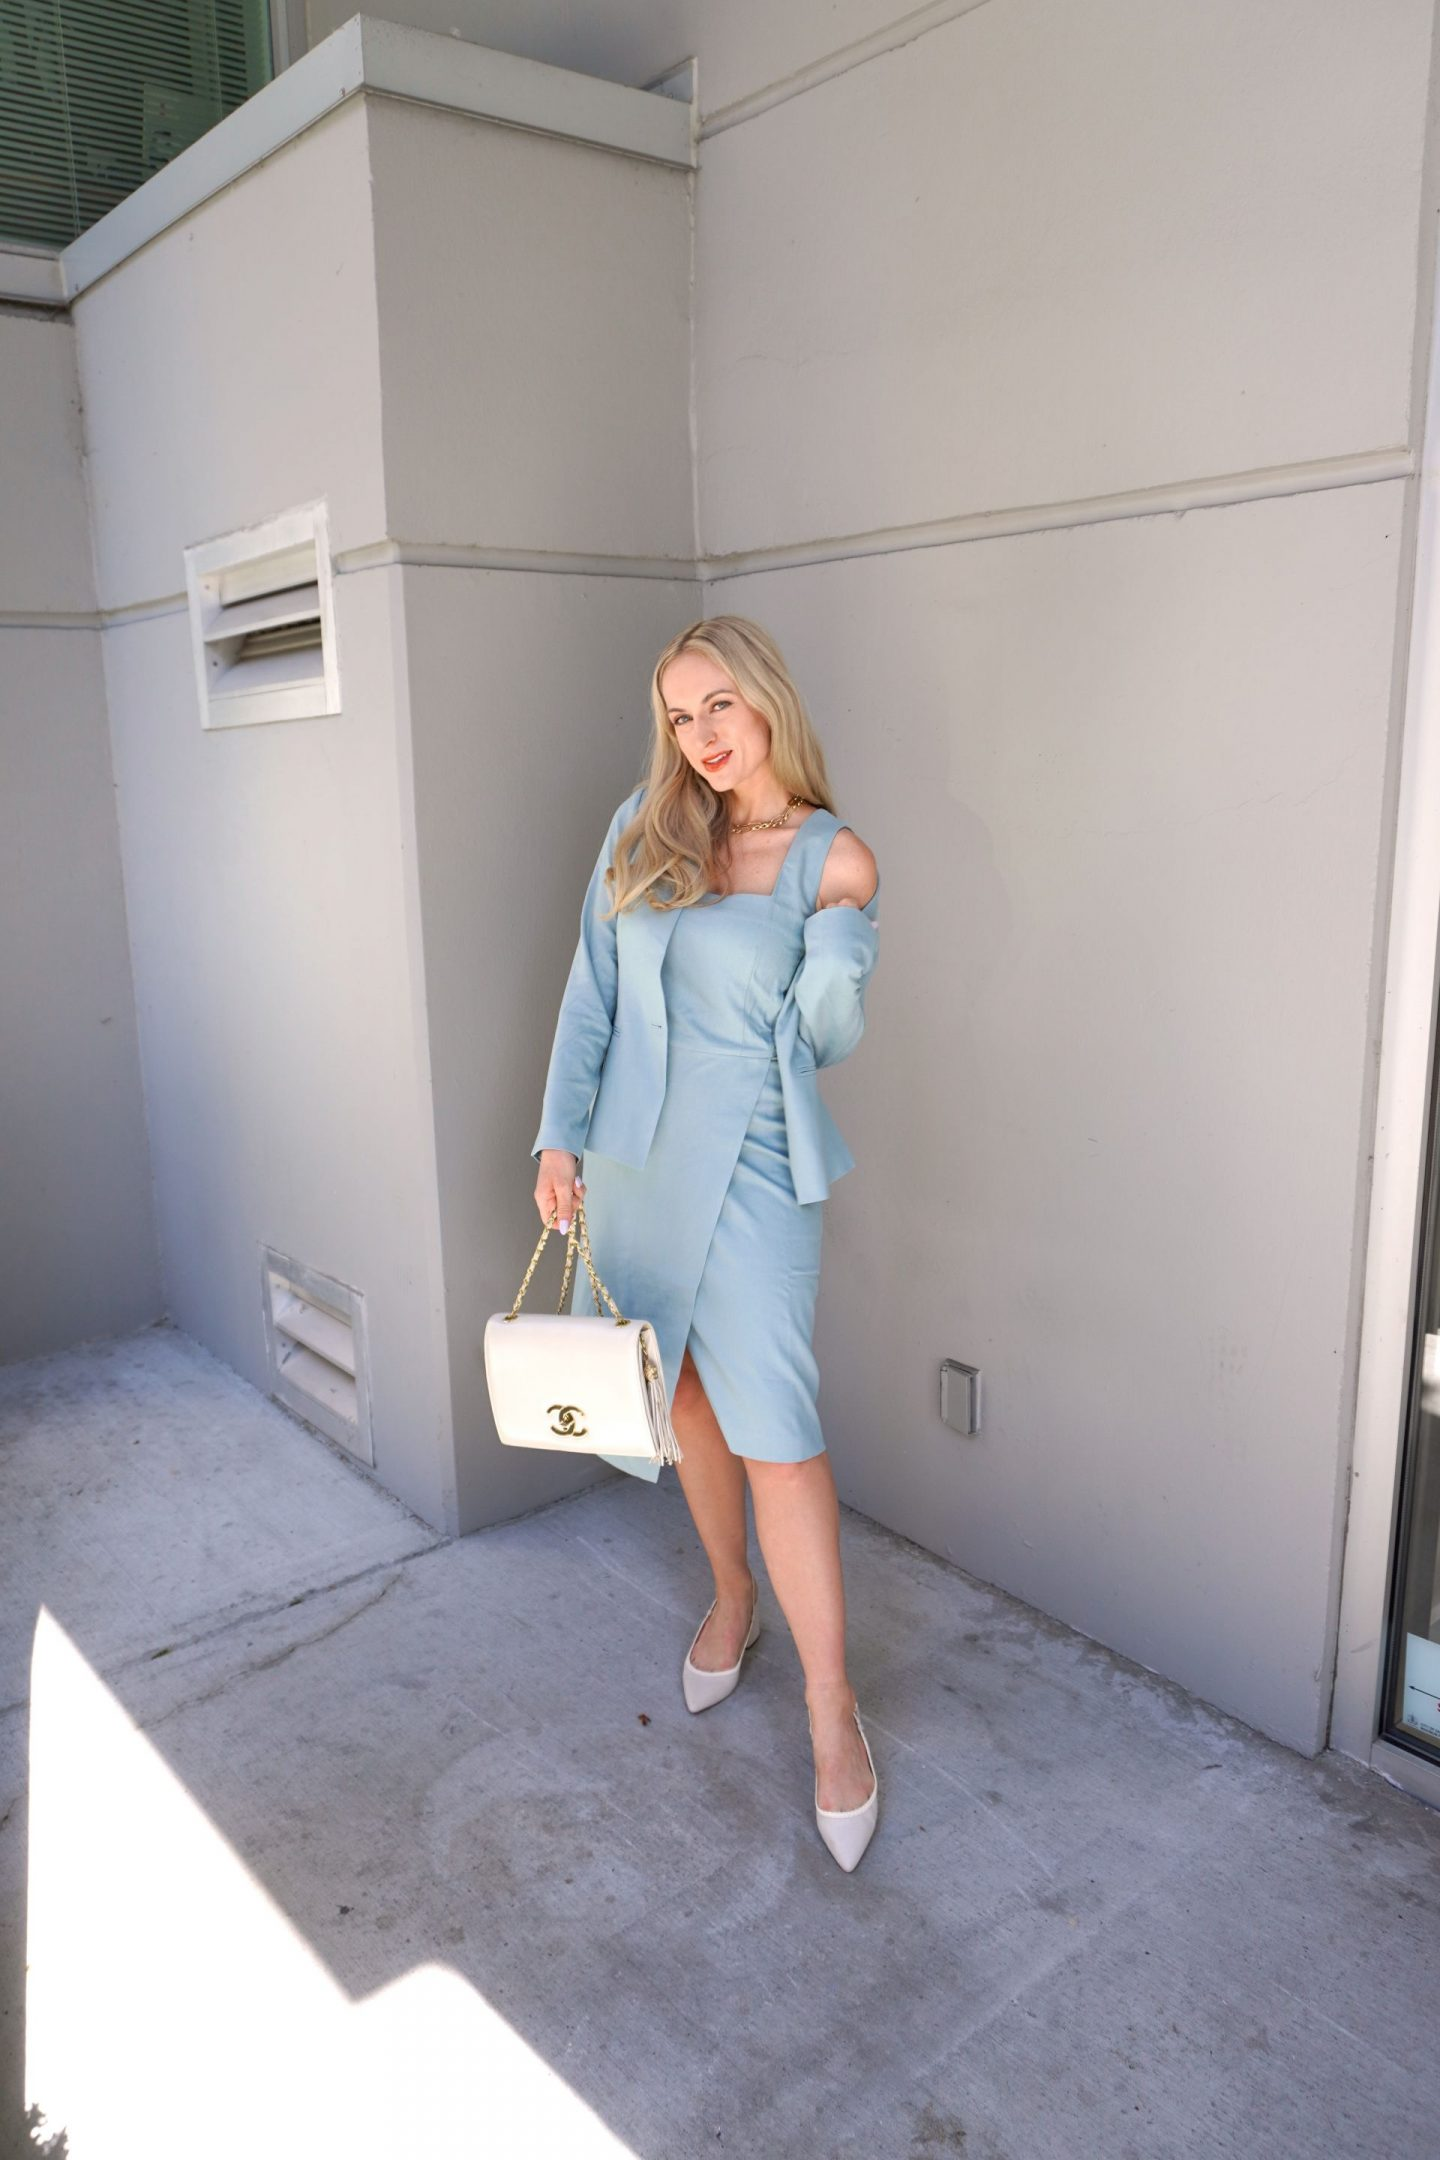 blonde woman standing in a teal dress and blazer - summer work wear outfit